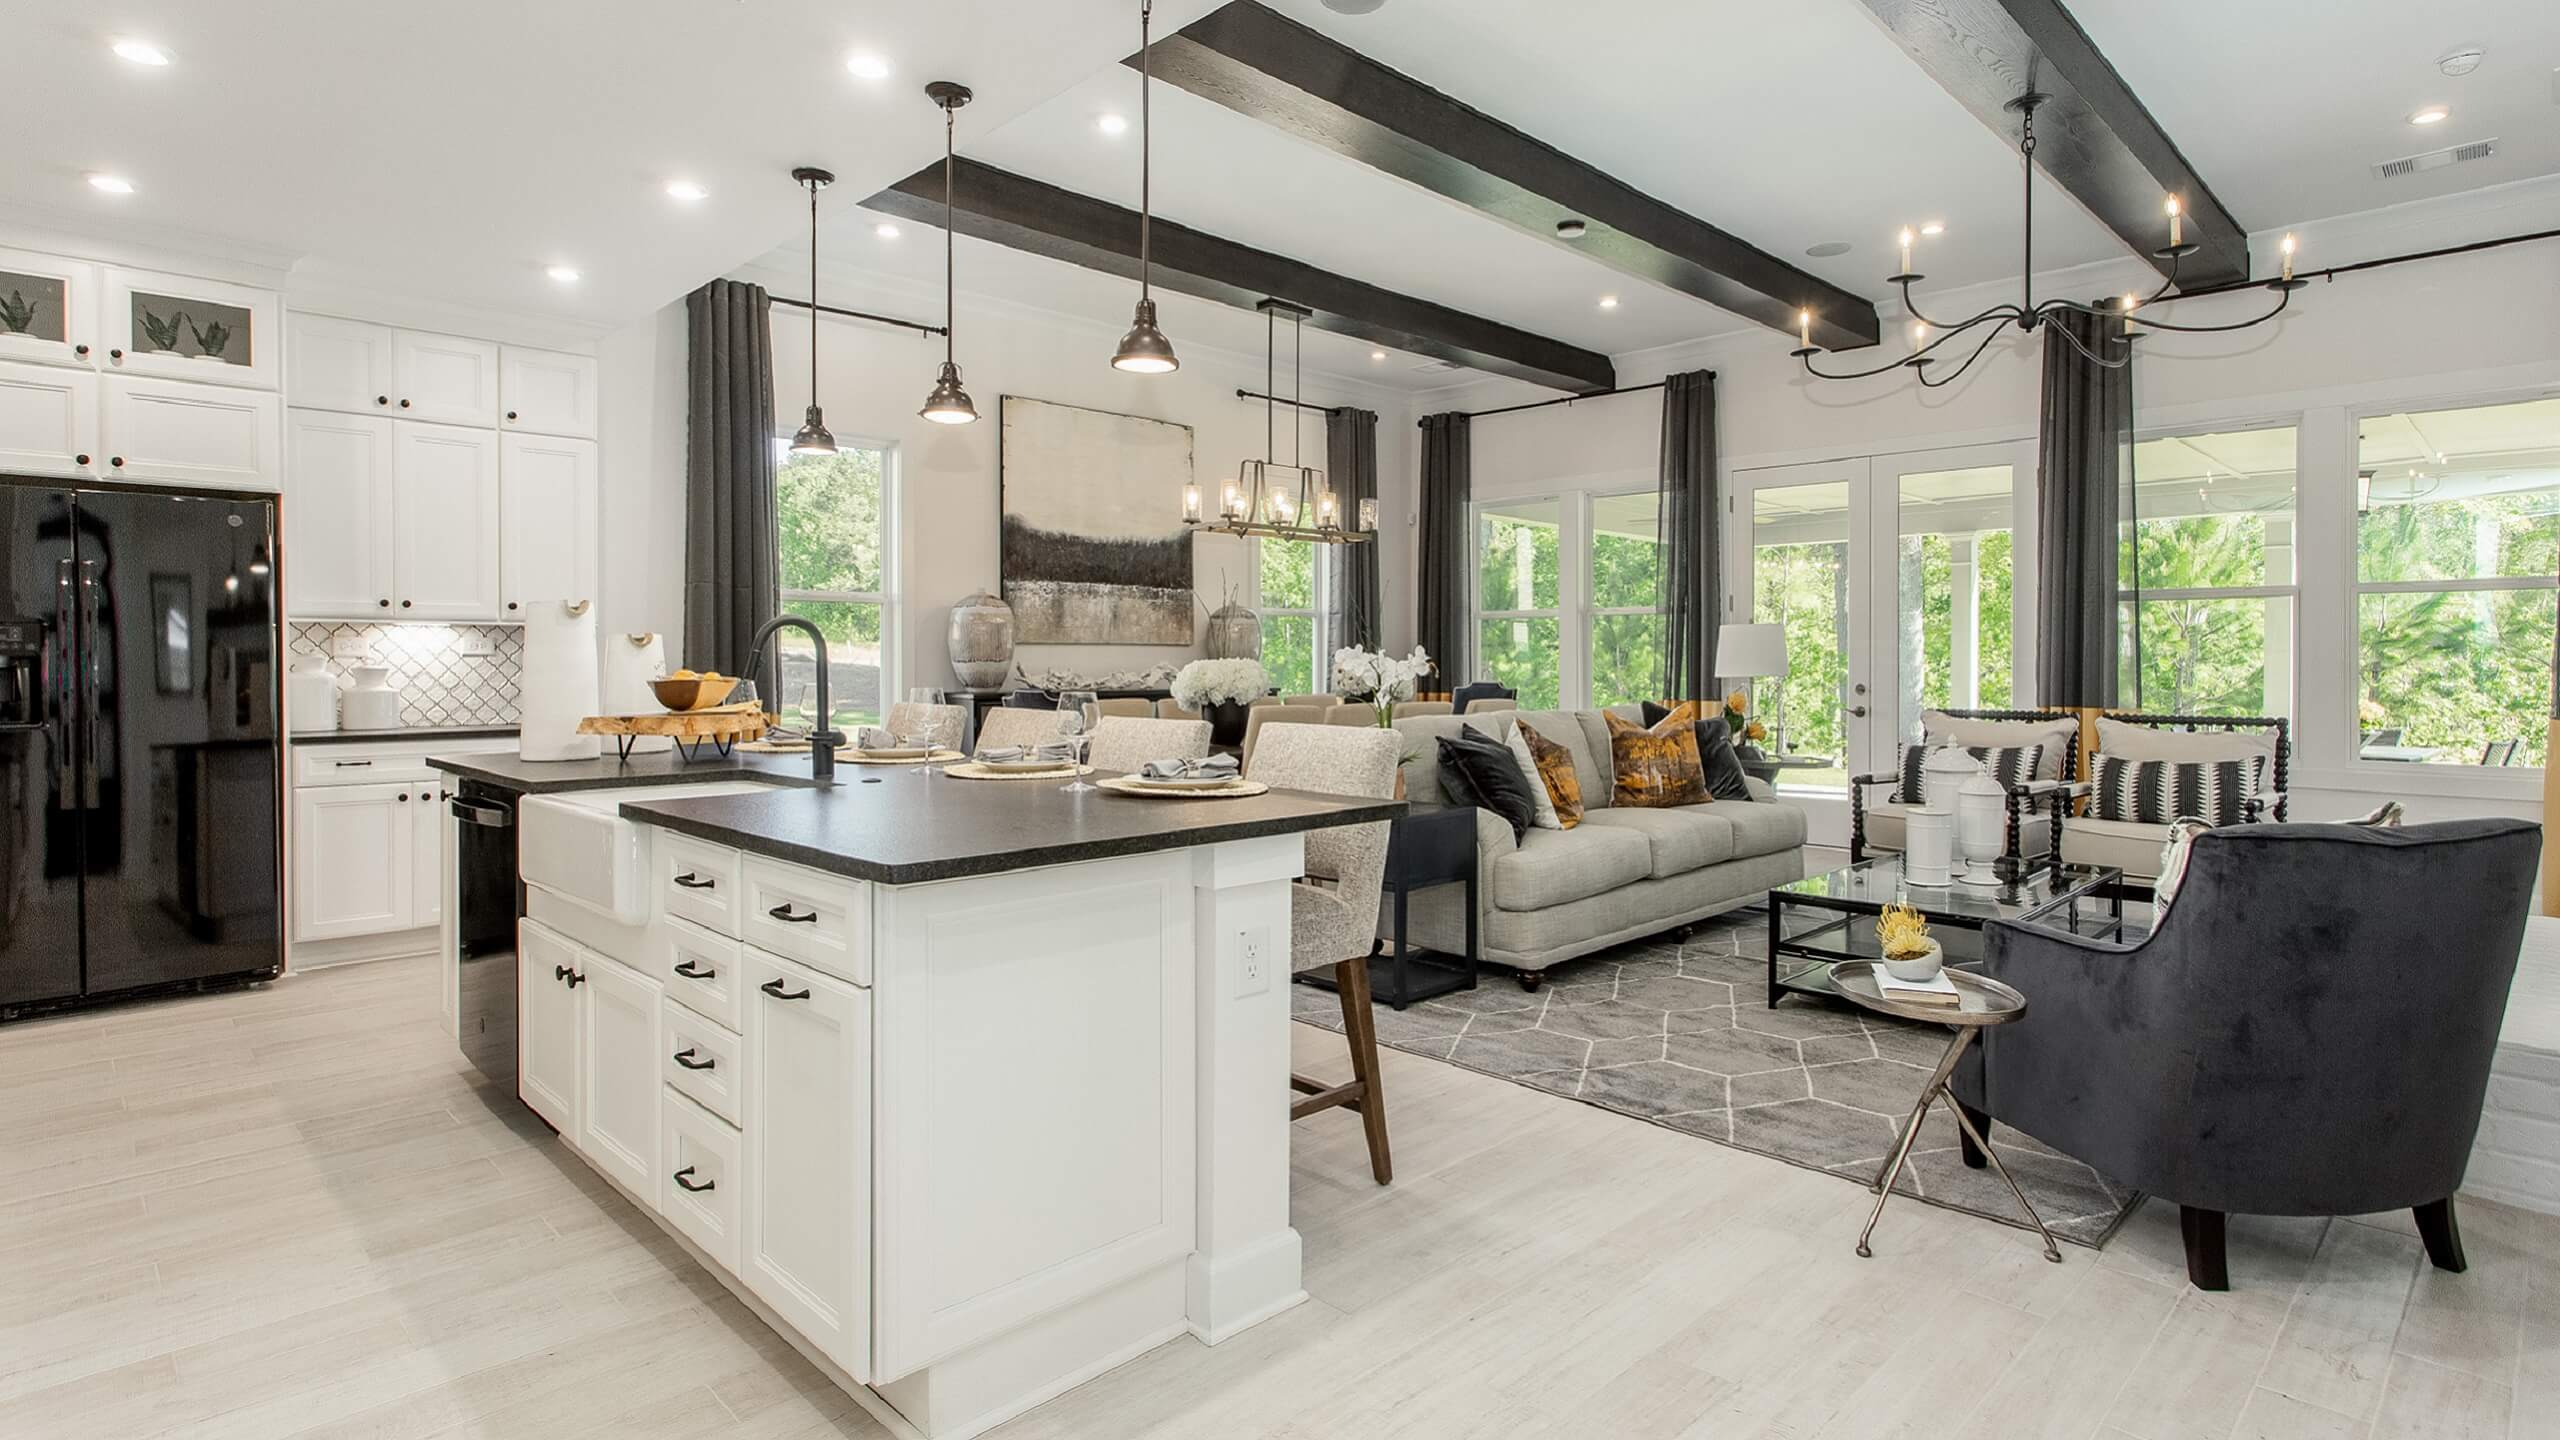 'Cresswind Georgia at Twin Lakes' by Kolter Homes in Atlanta